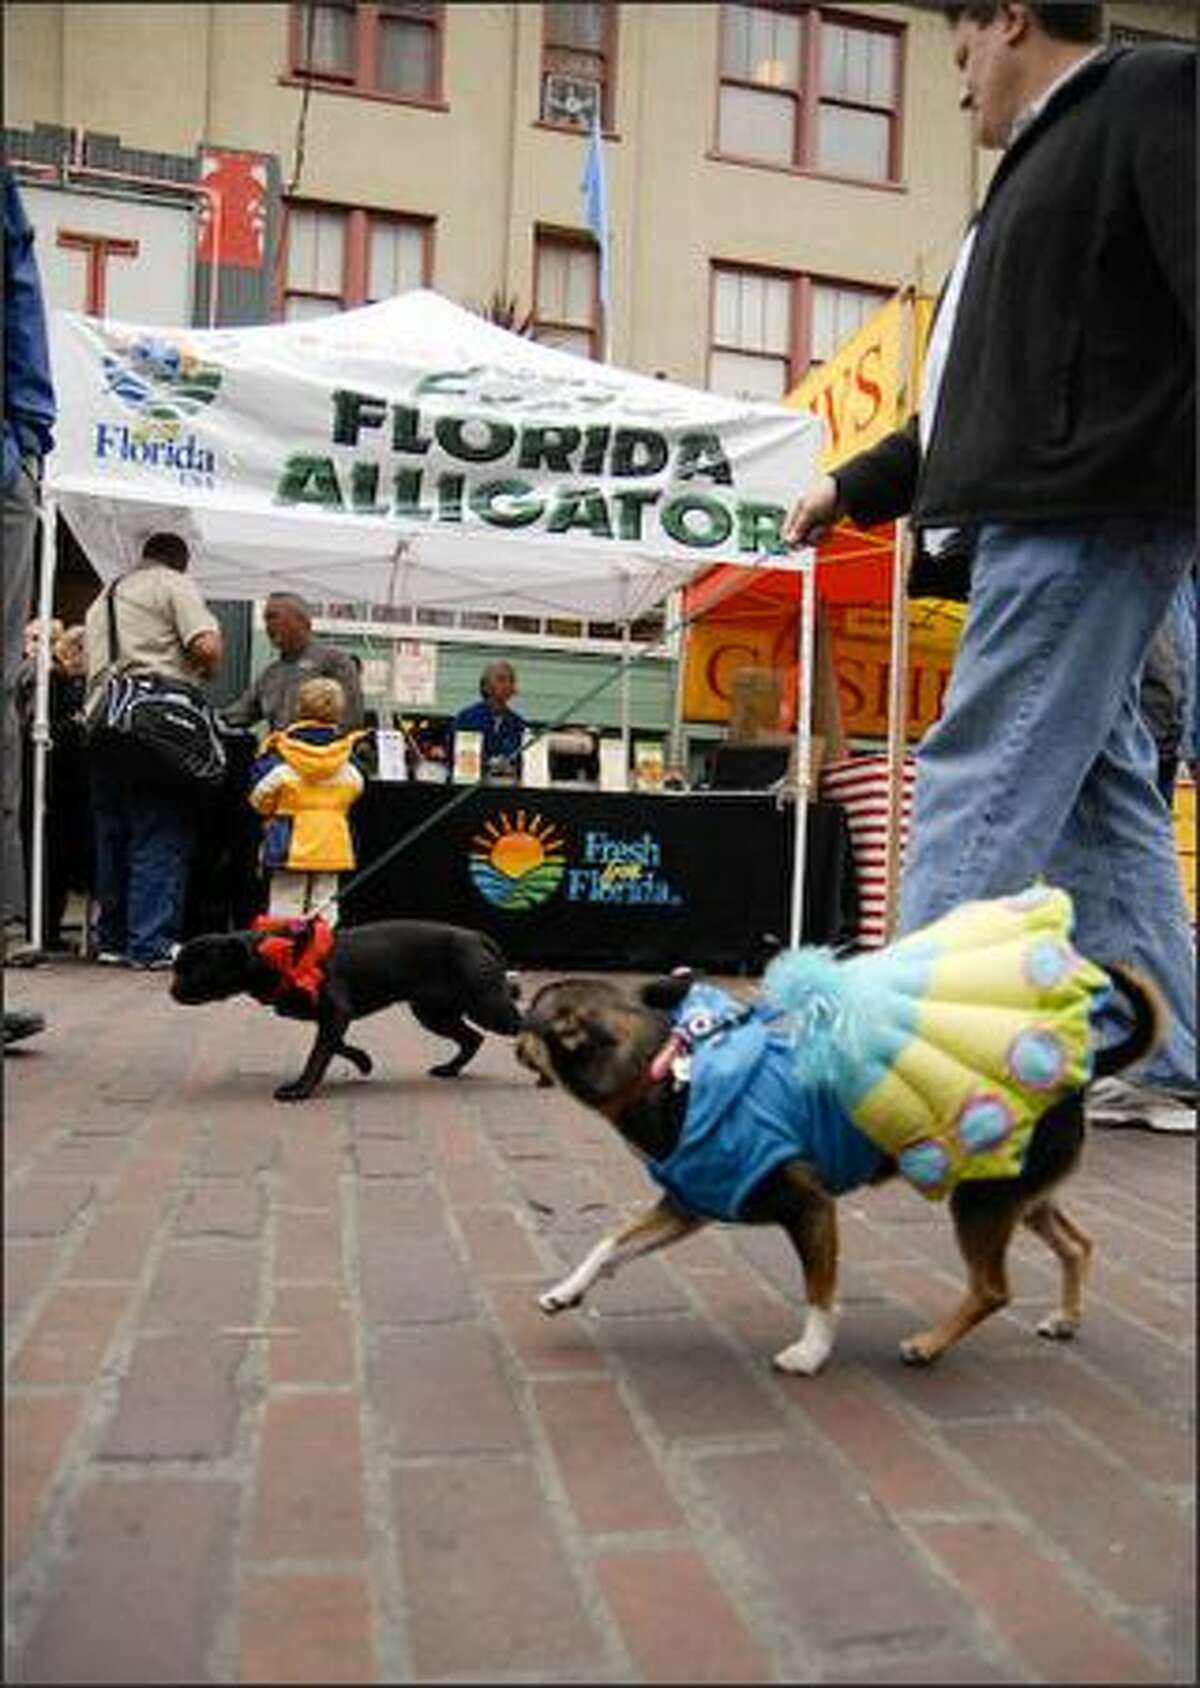 Two costumed dogs strut past a stand advertising Florida alligator meat during the Strut Your Mutt Parade on Sunday at Pike Place Market.